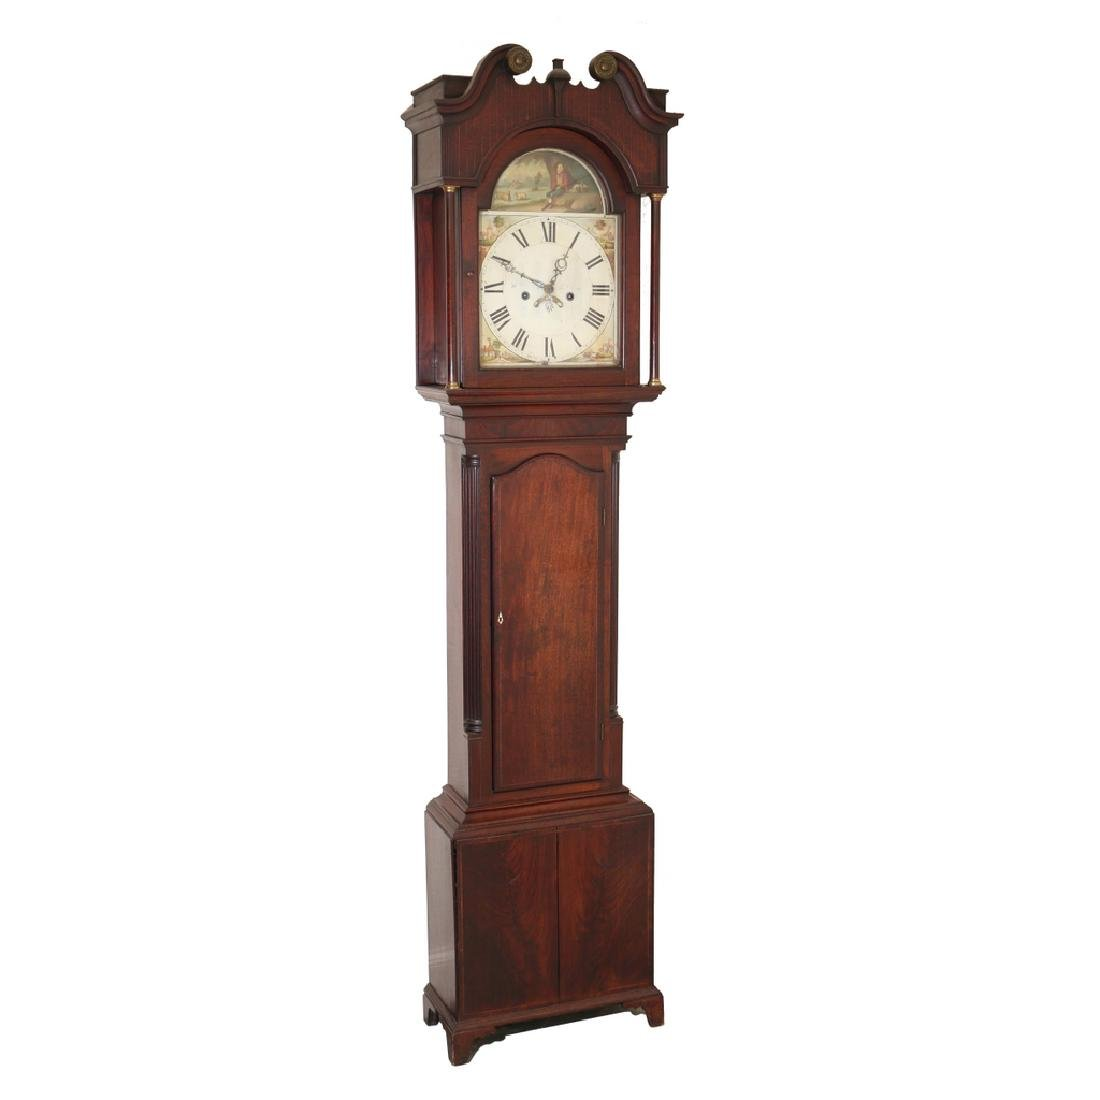 19THC. TALL CASE CLOCK